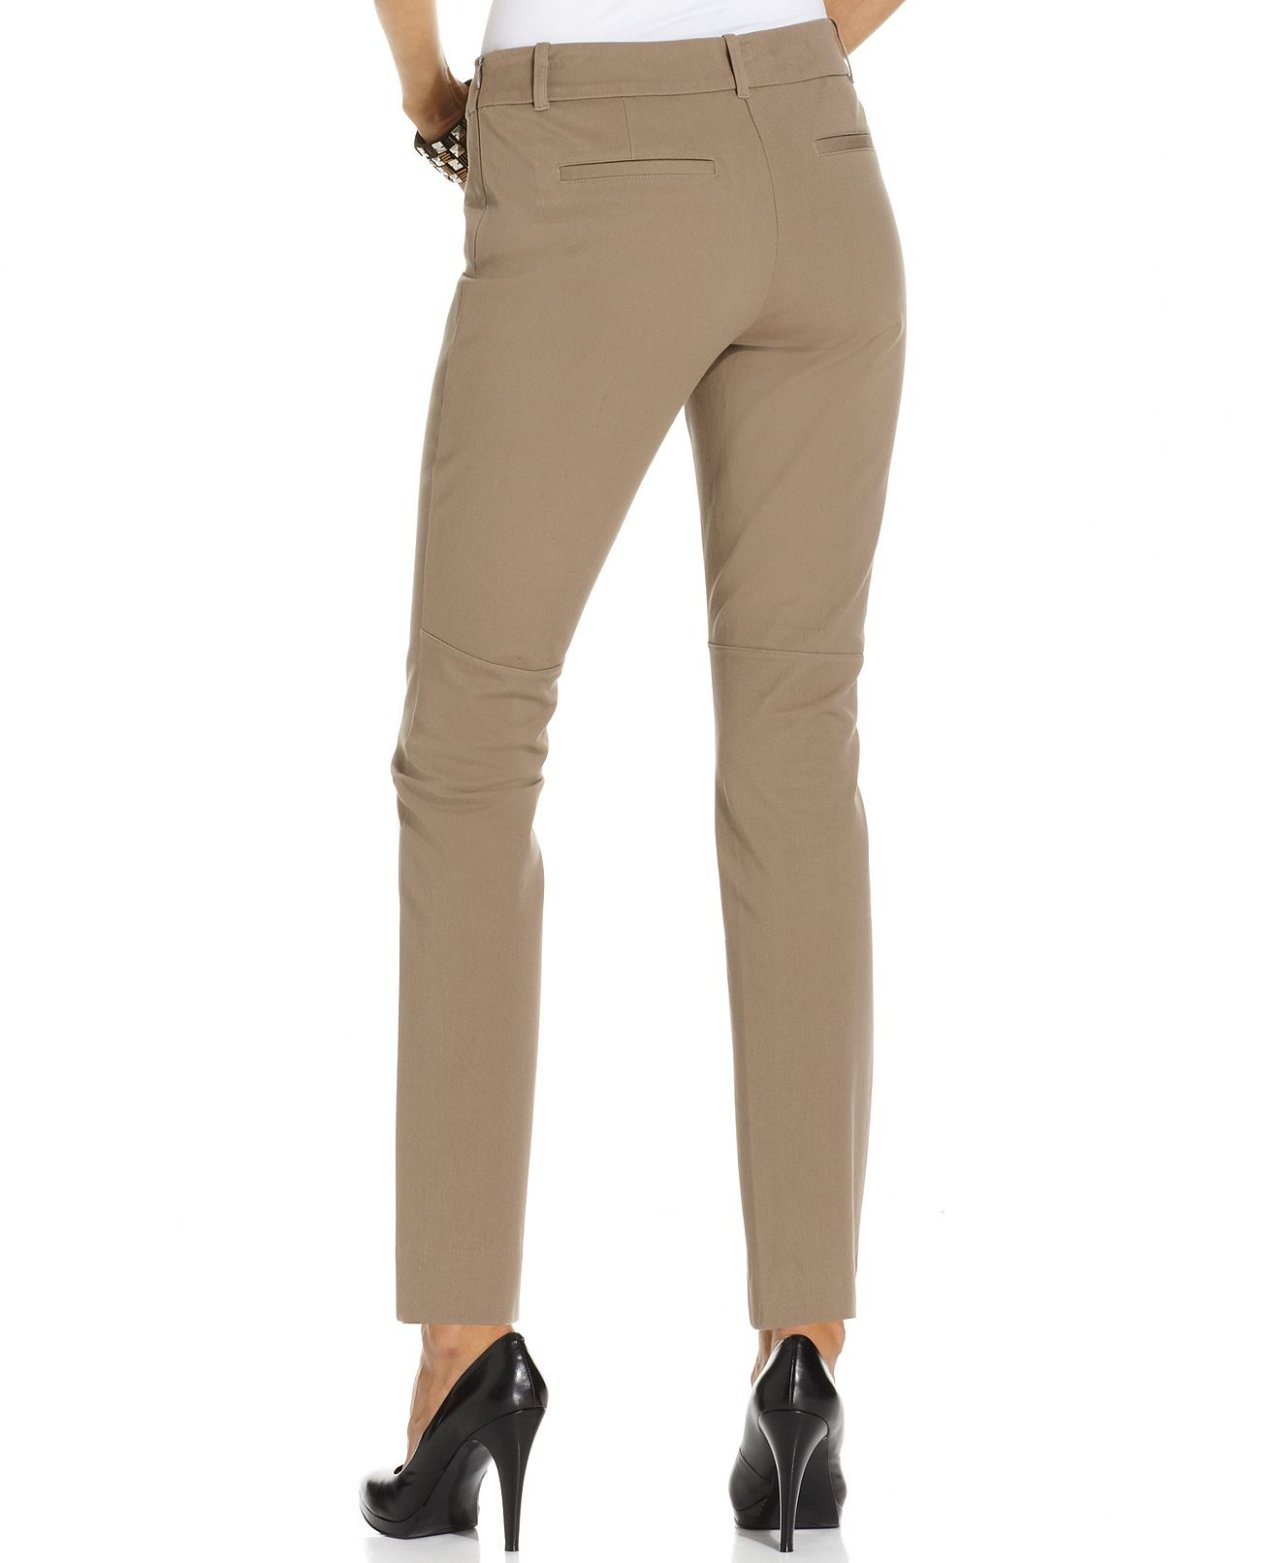 Innovative Black Skinny Dress Pants Women  Fat Pants